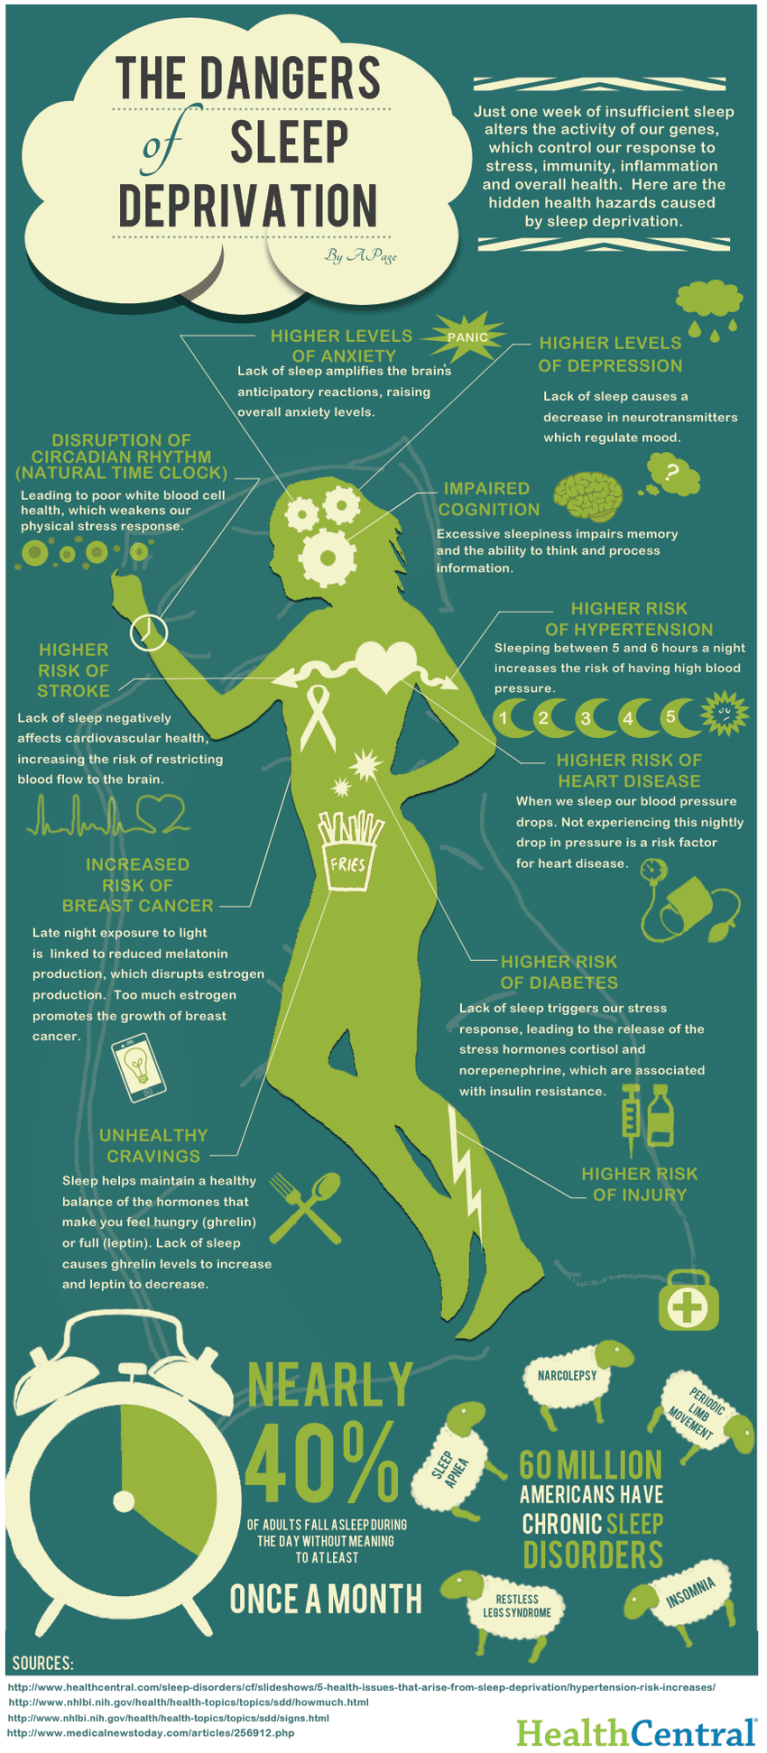 This is Your Body Without Sleep (infographic) - see Pinterest link for image credits